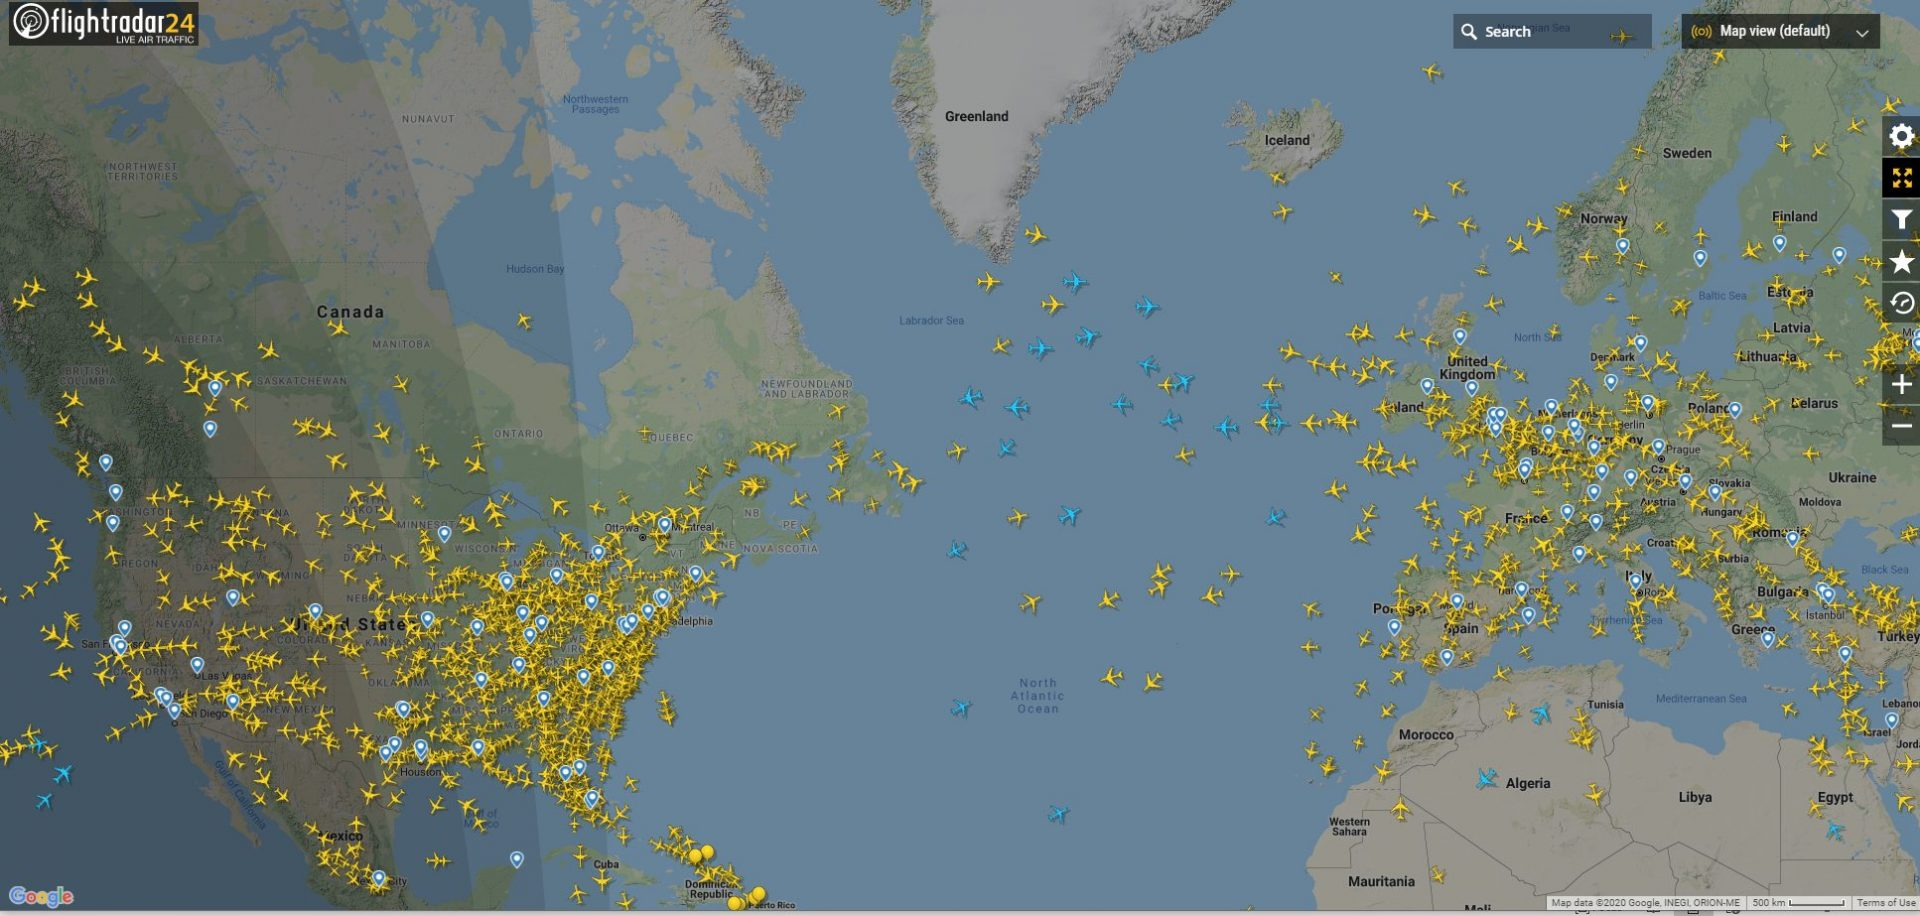 Counterpoint Covid update: Reduced air traffic over the Atlantic